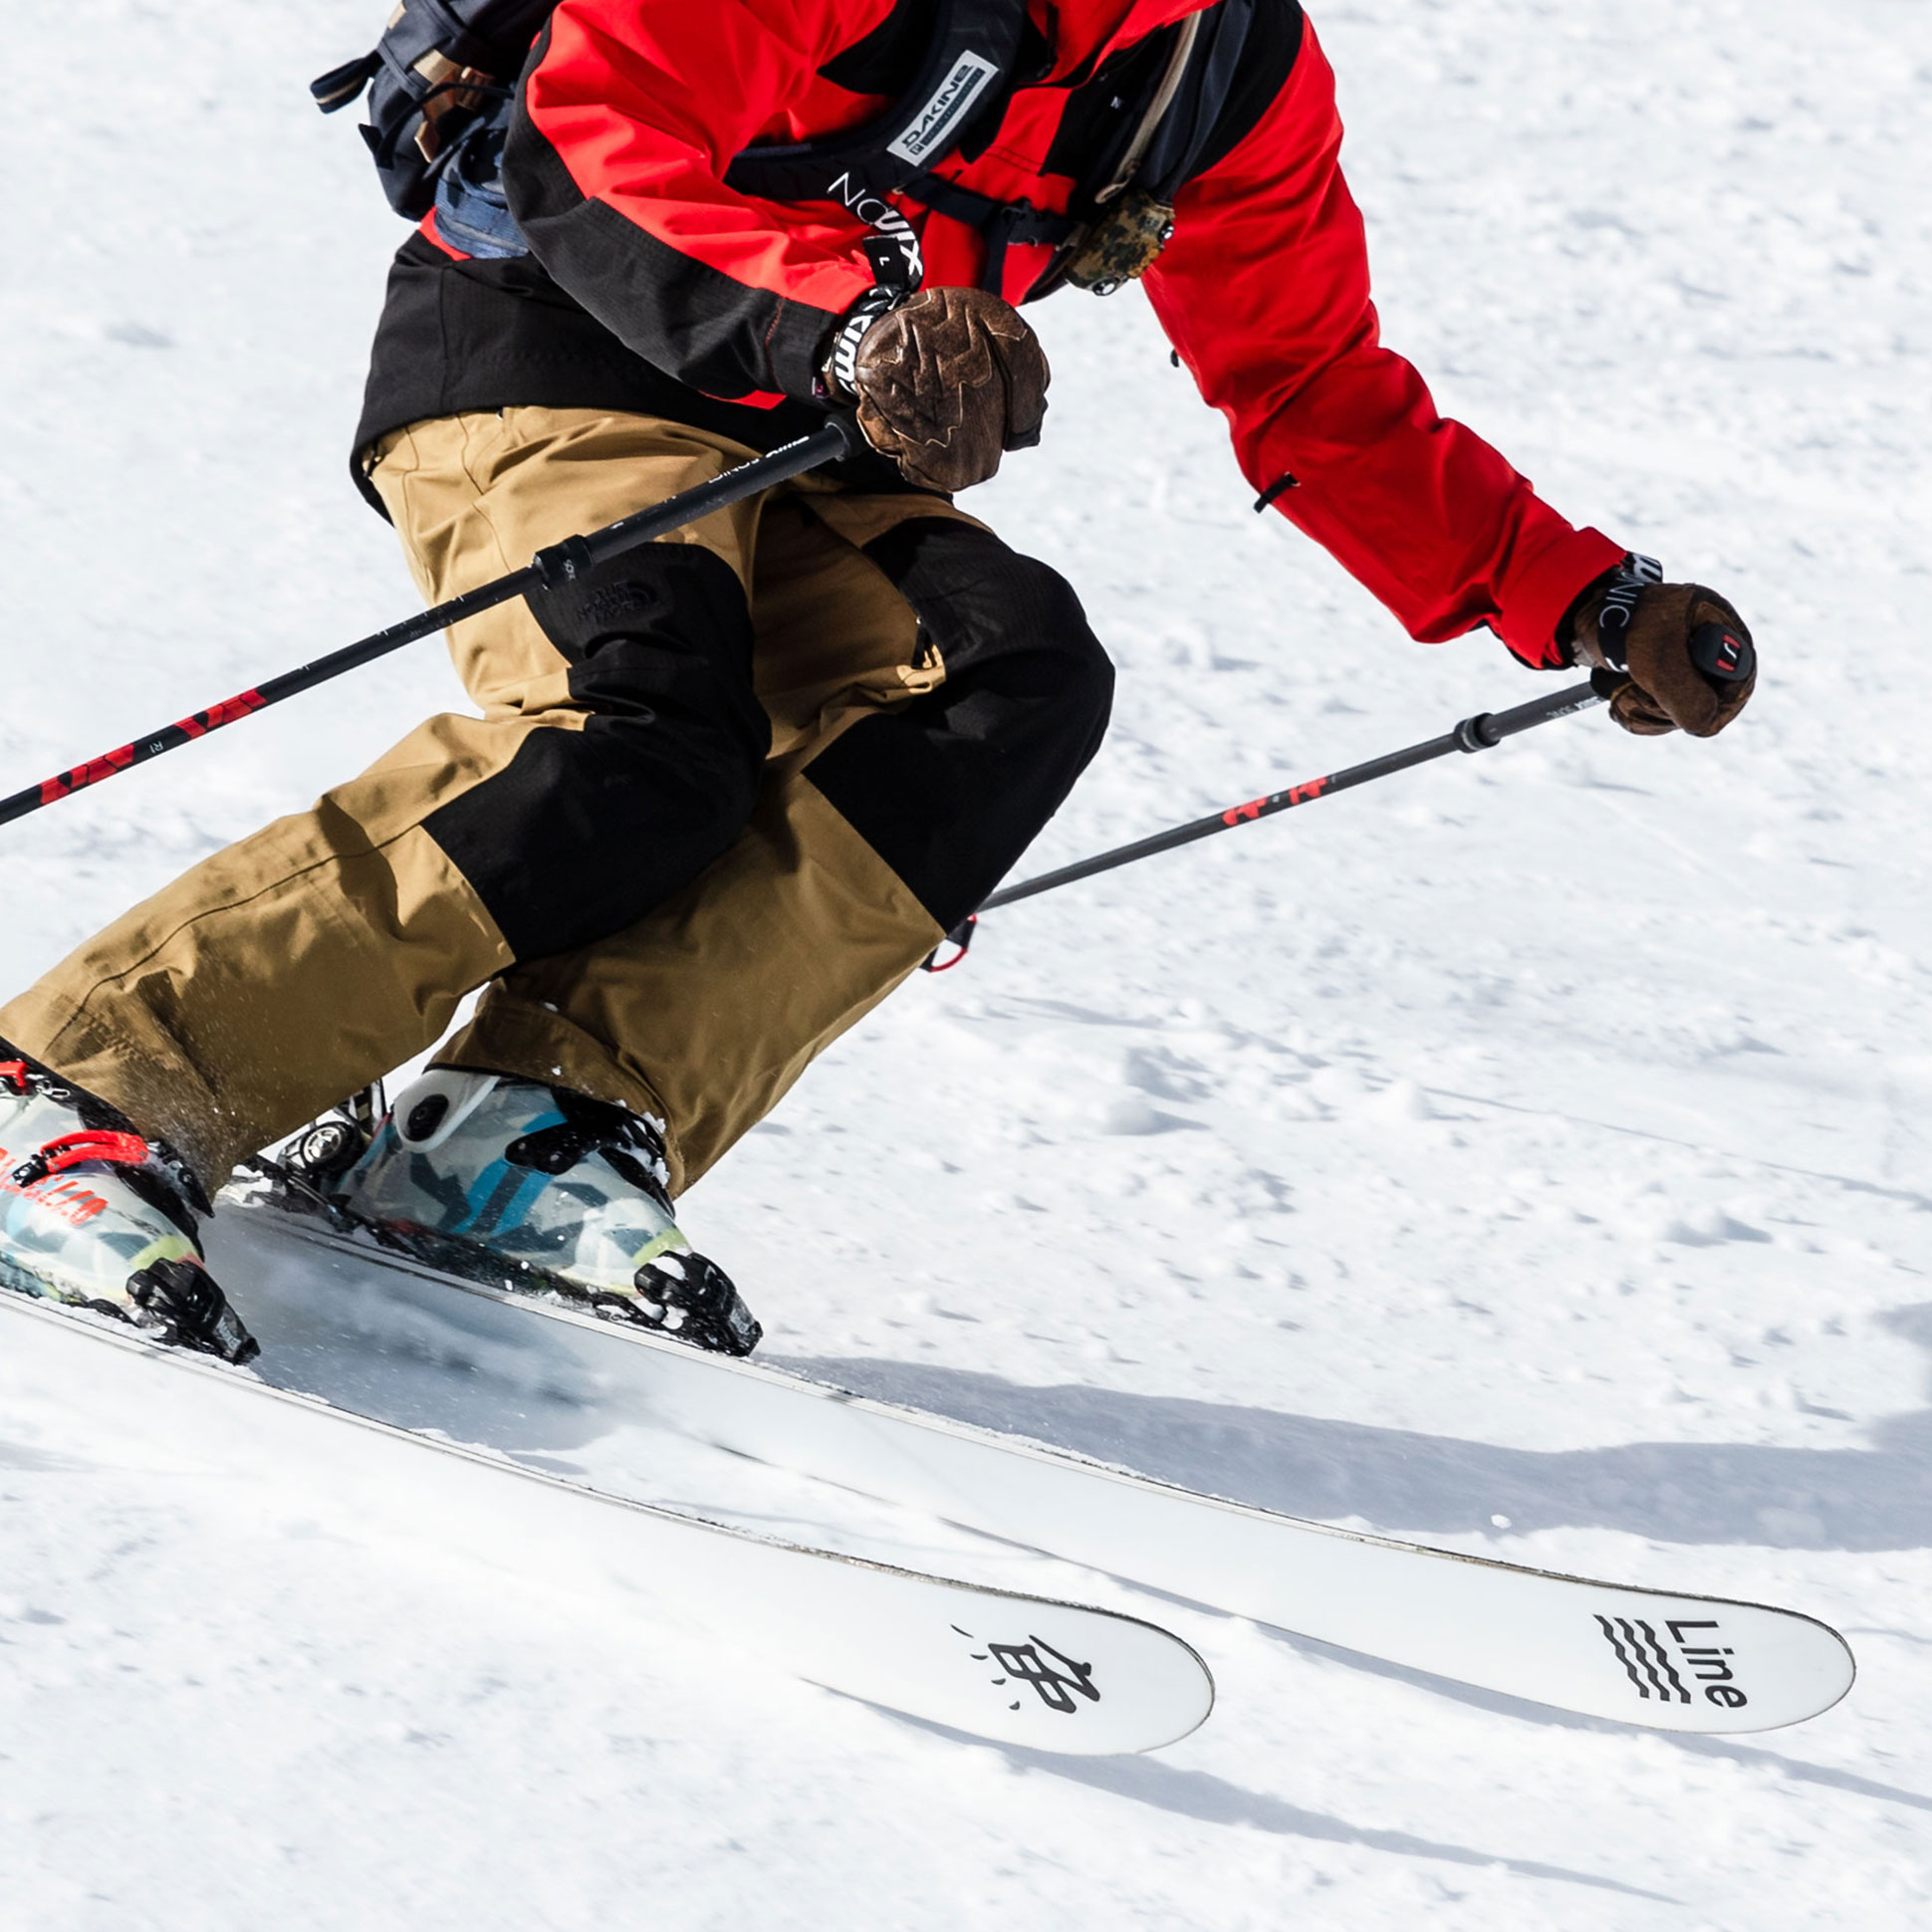 Best Snowboard Mittens 2020 A Preview of the Best Ski and Snowboard Gear of 2020